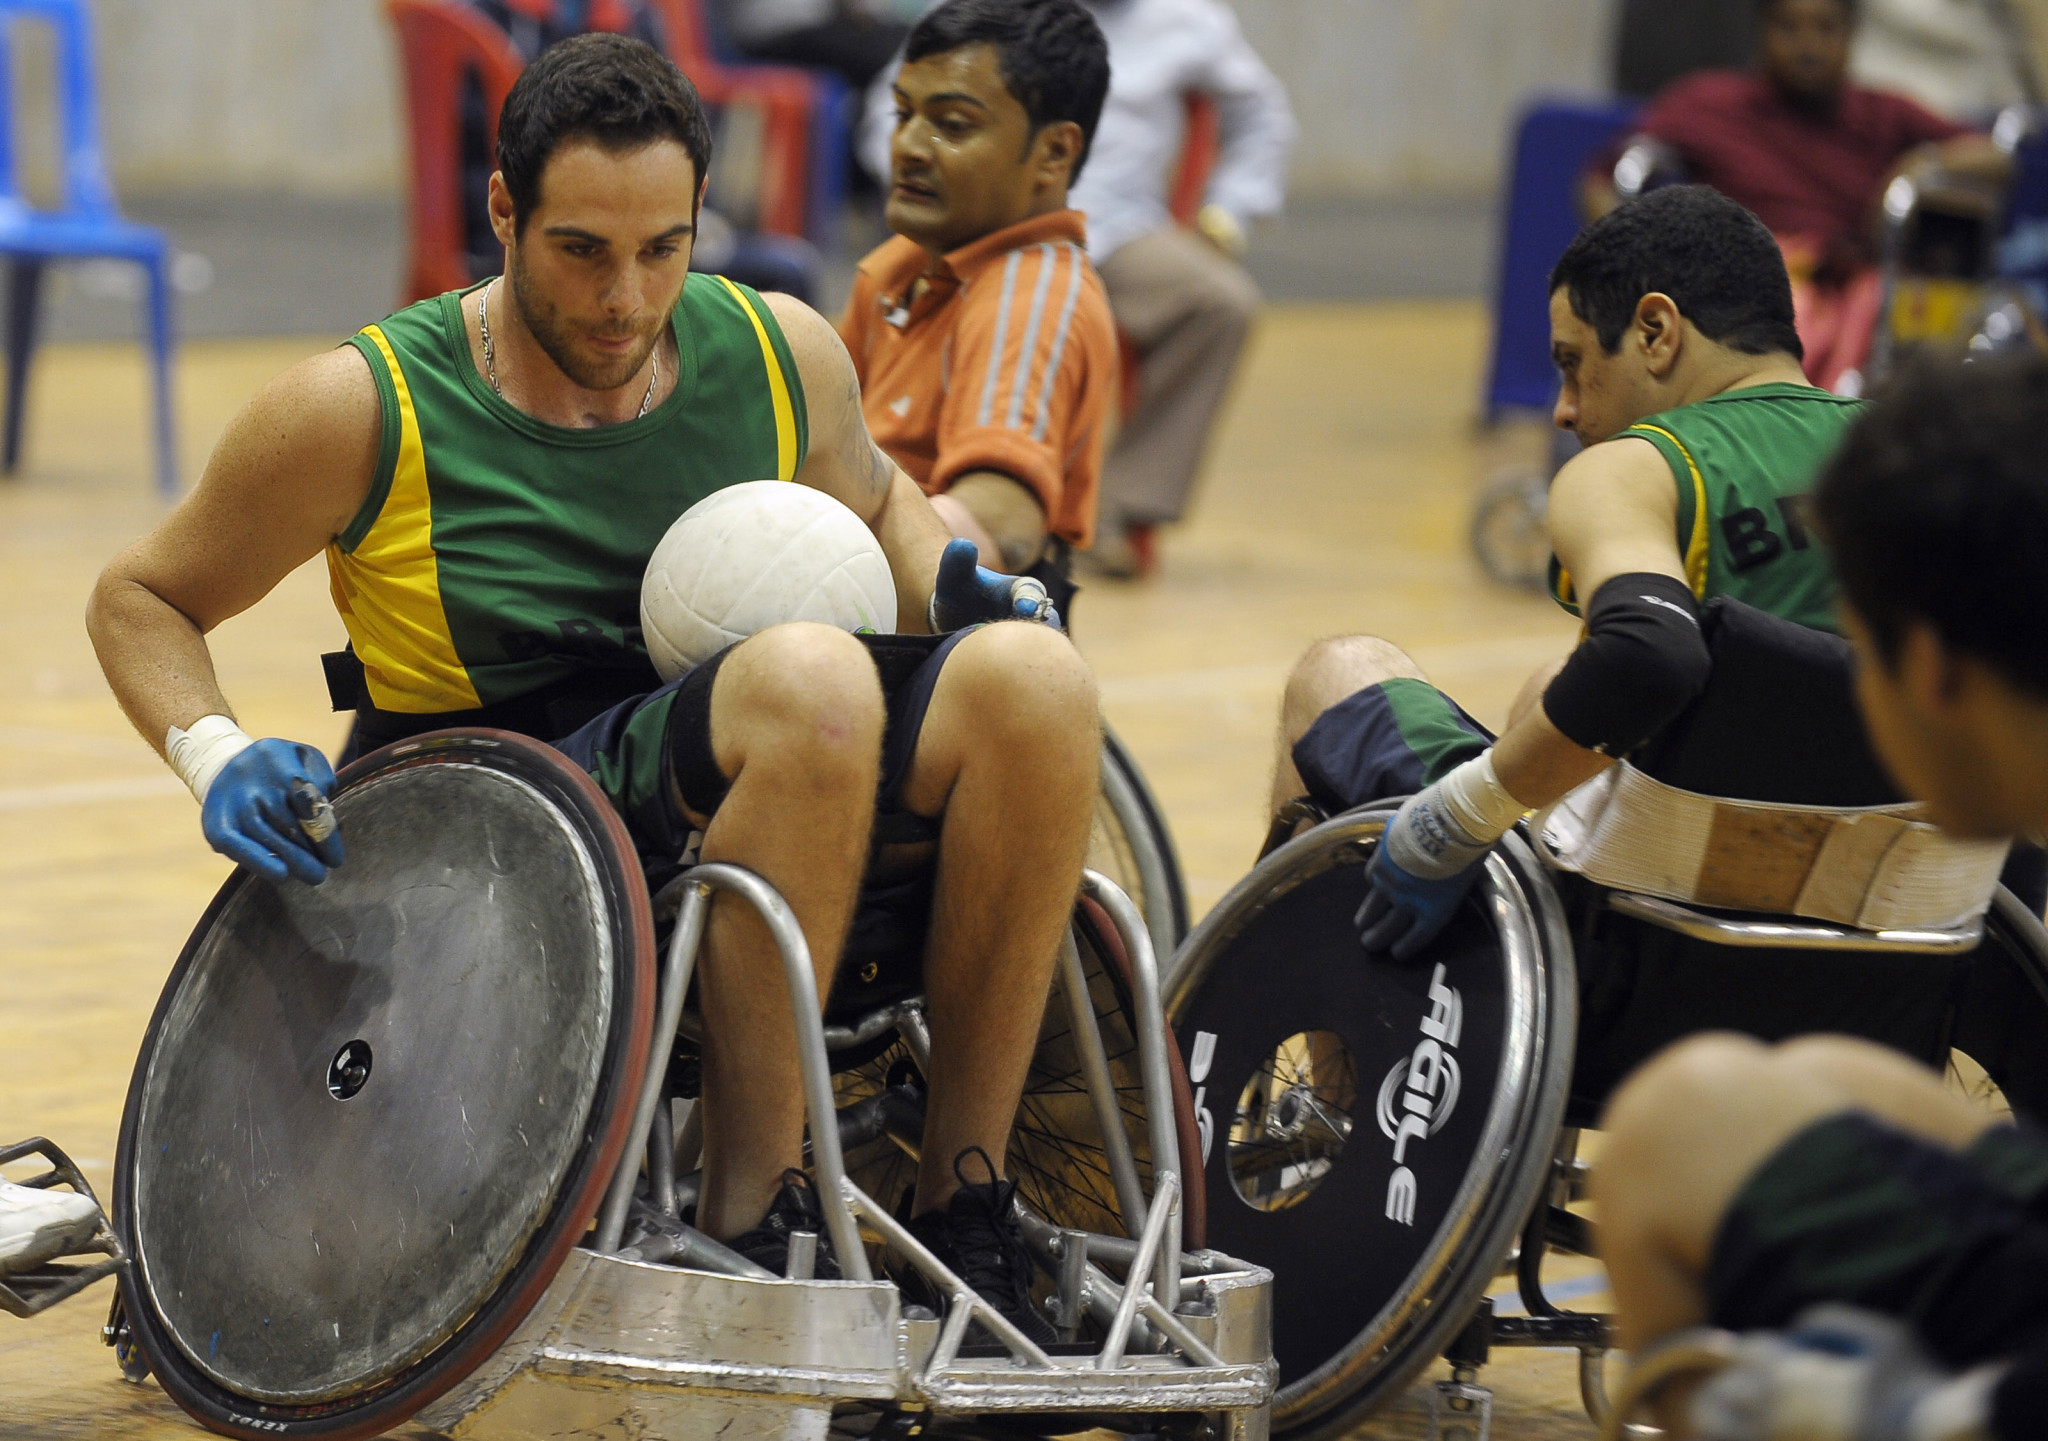 A new wheelchair rugby rule book is due to be published on January 1, 2018 ©Getty Images